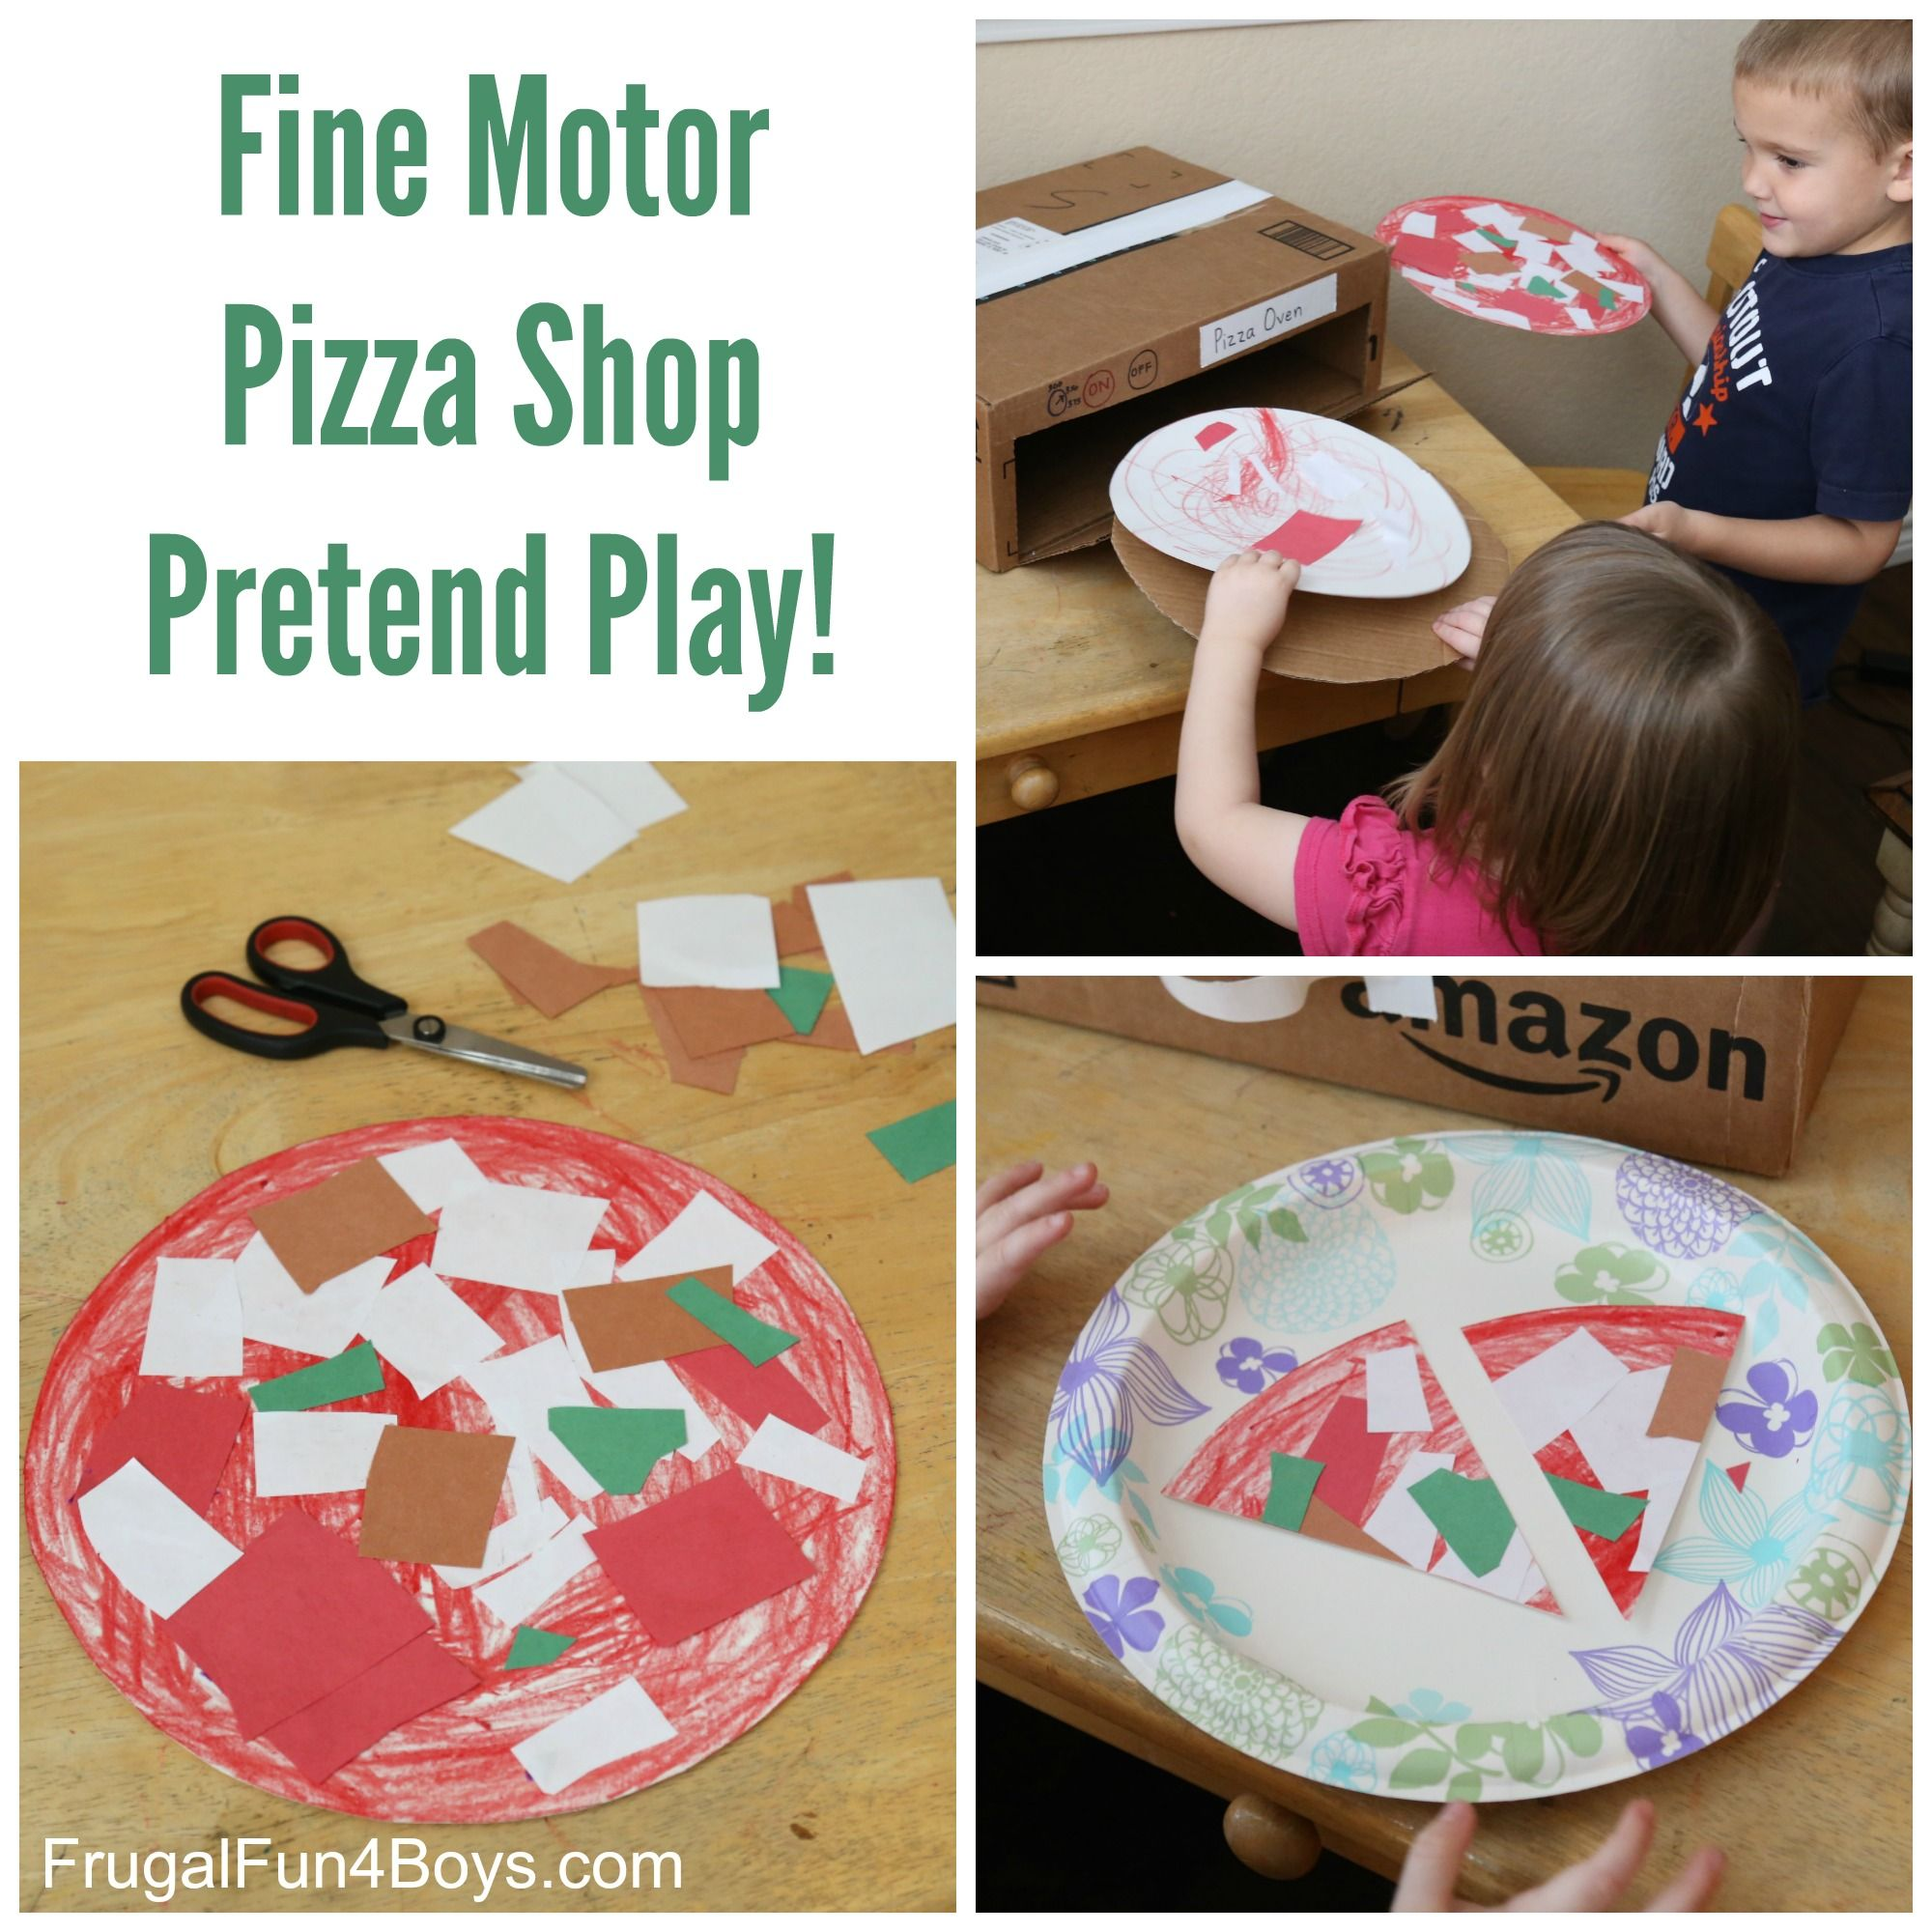 Pizza Shop Pretend Play Fine Motor Activity Frugal Fun For Boys And Girls Fun Activities For Preschoolers Preschool Activities Fine Motor Activities [ 2000 x 2000 Pixel ]